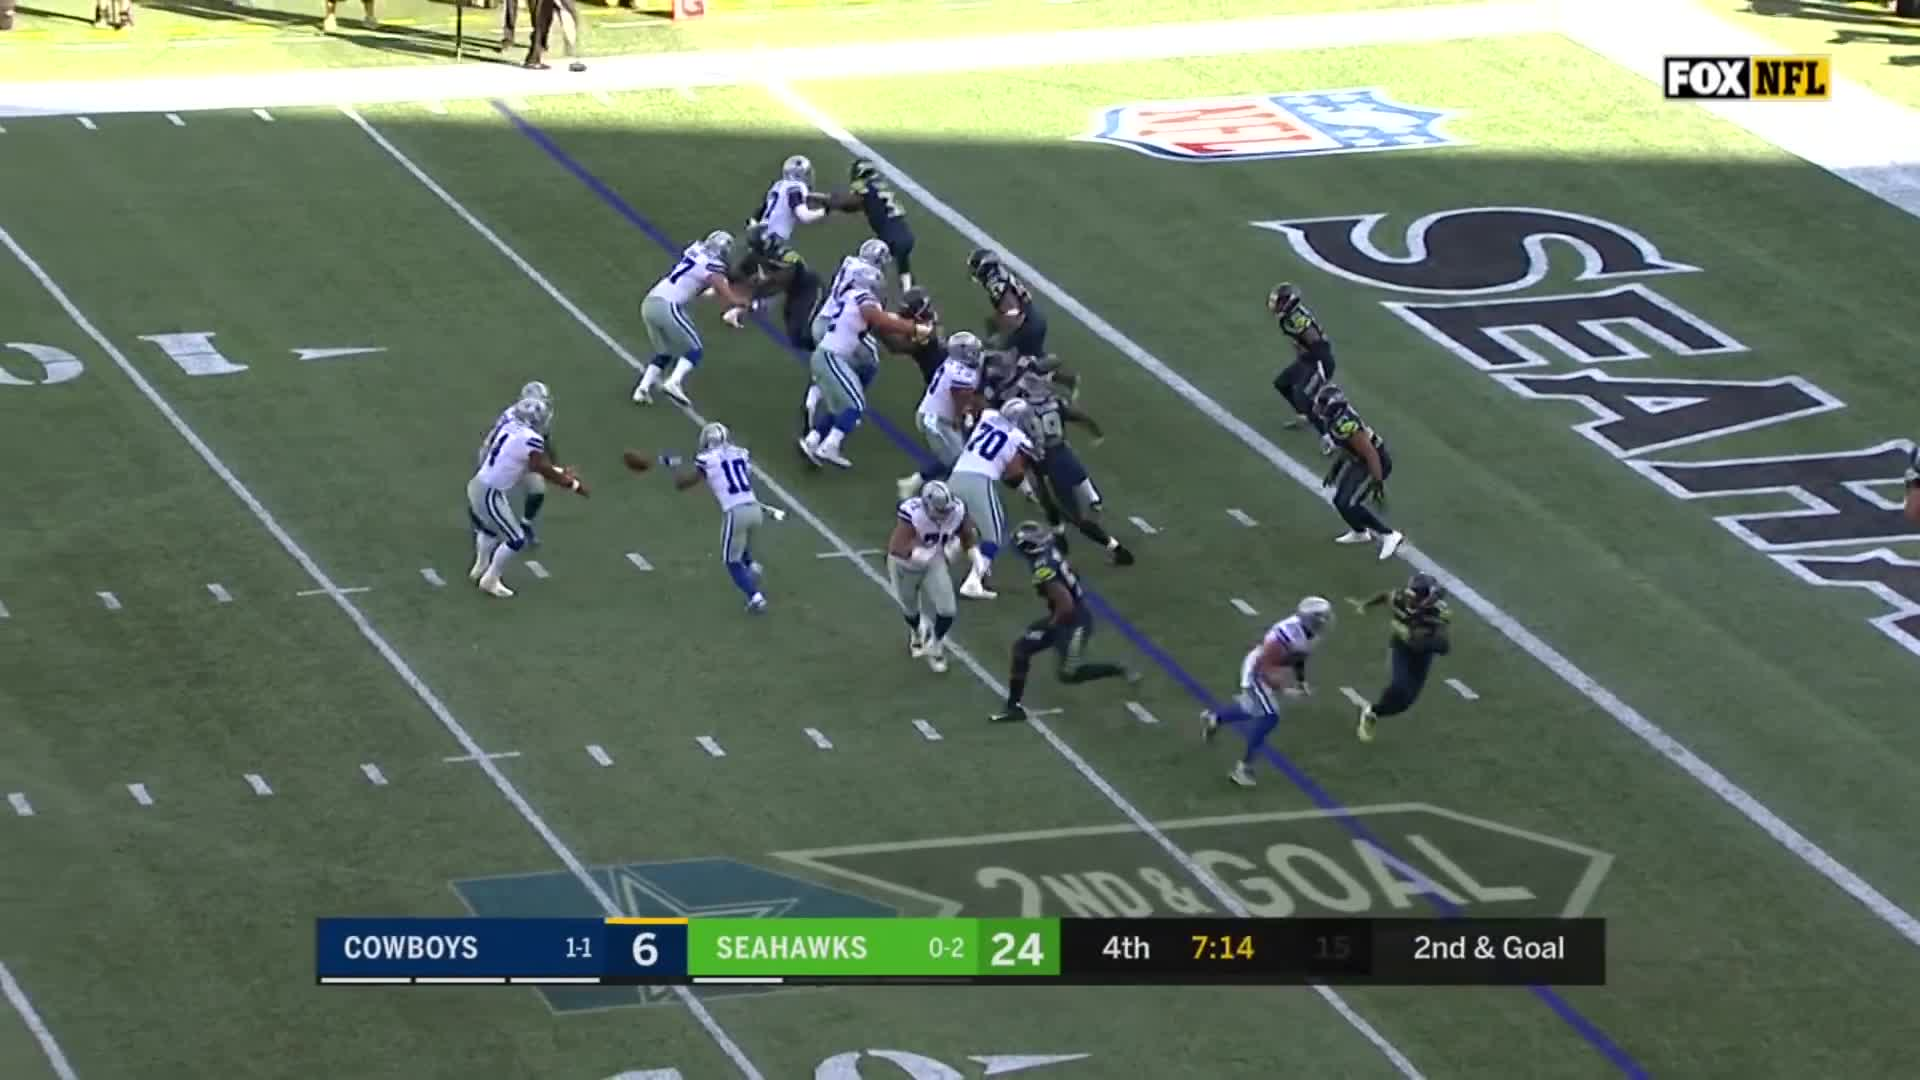 afc, game, highlight, highlights, Untitled GIFs